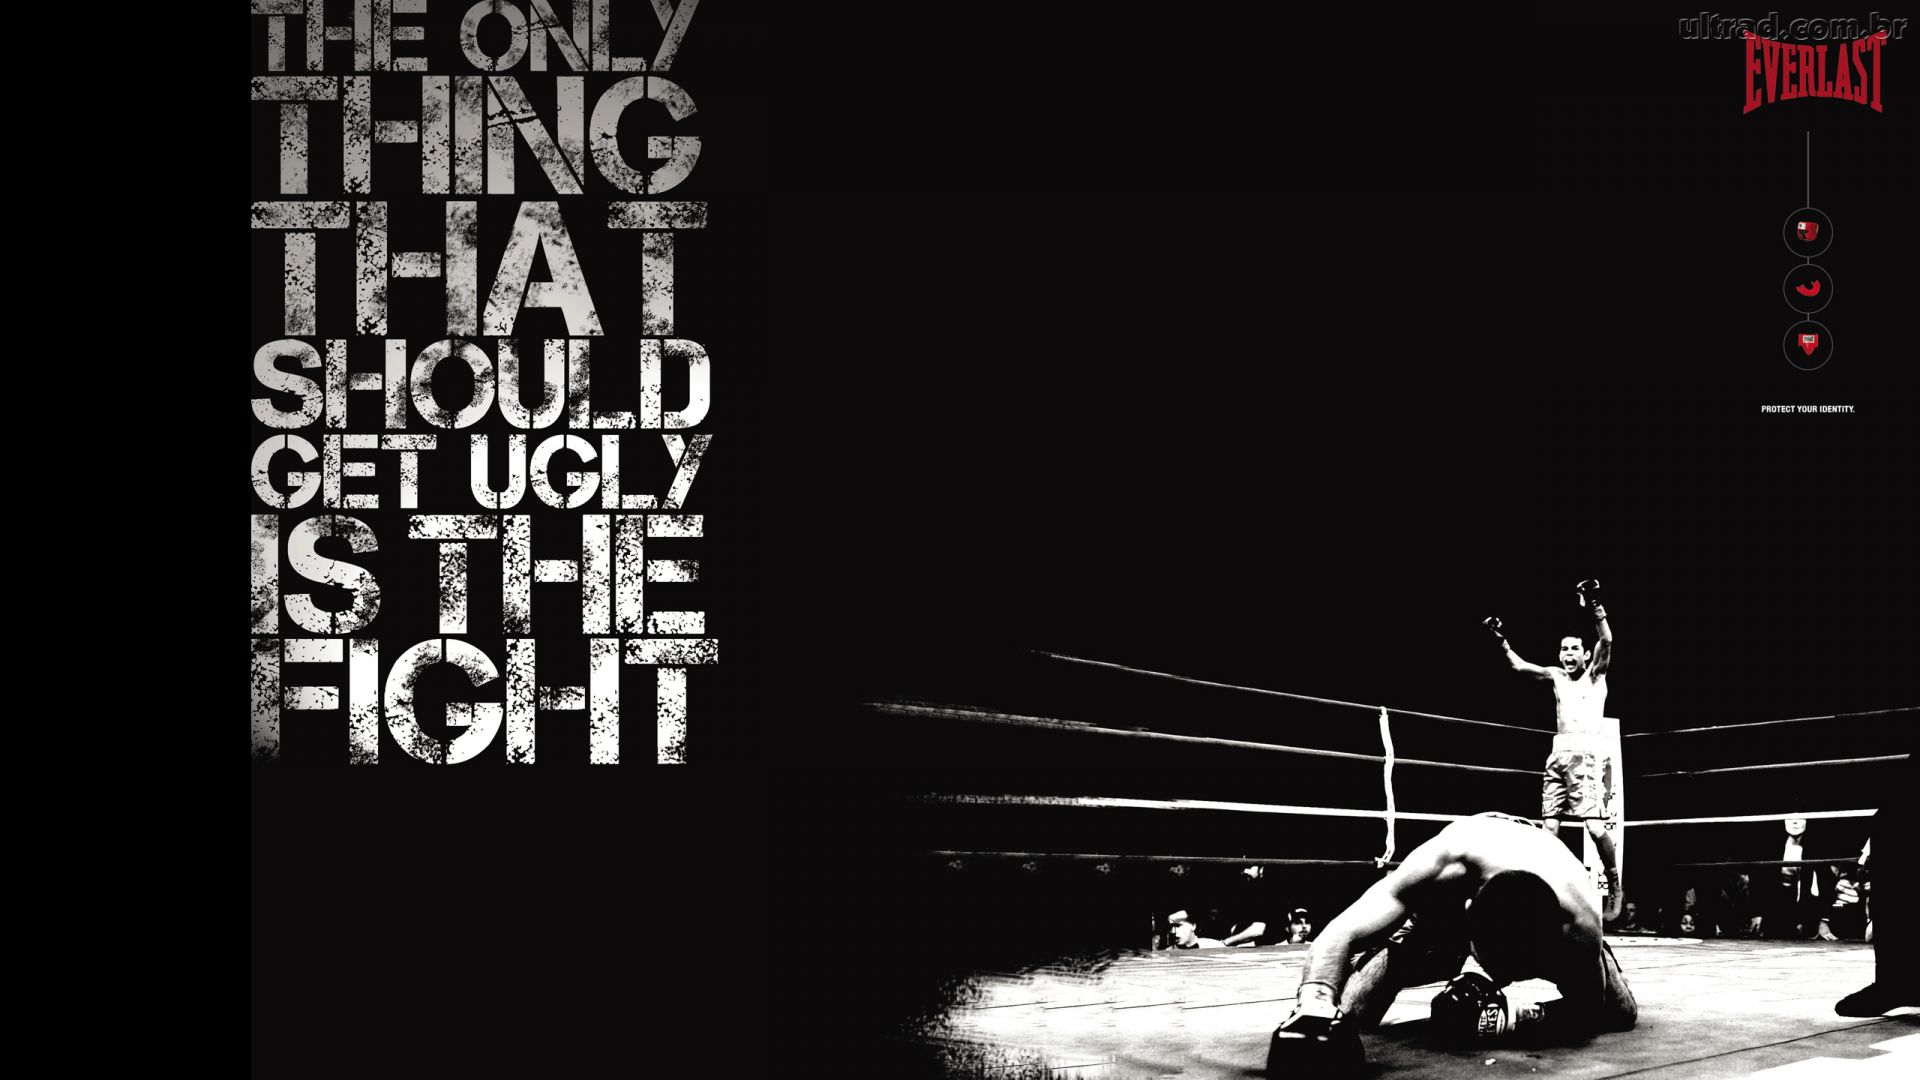 Manny Pacquiao Quotes Wallpaper Boxing Wallpaper 46 Wallpapers Adorable Wallpapers